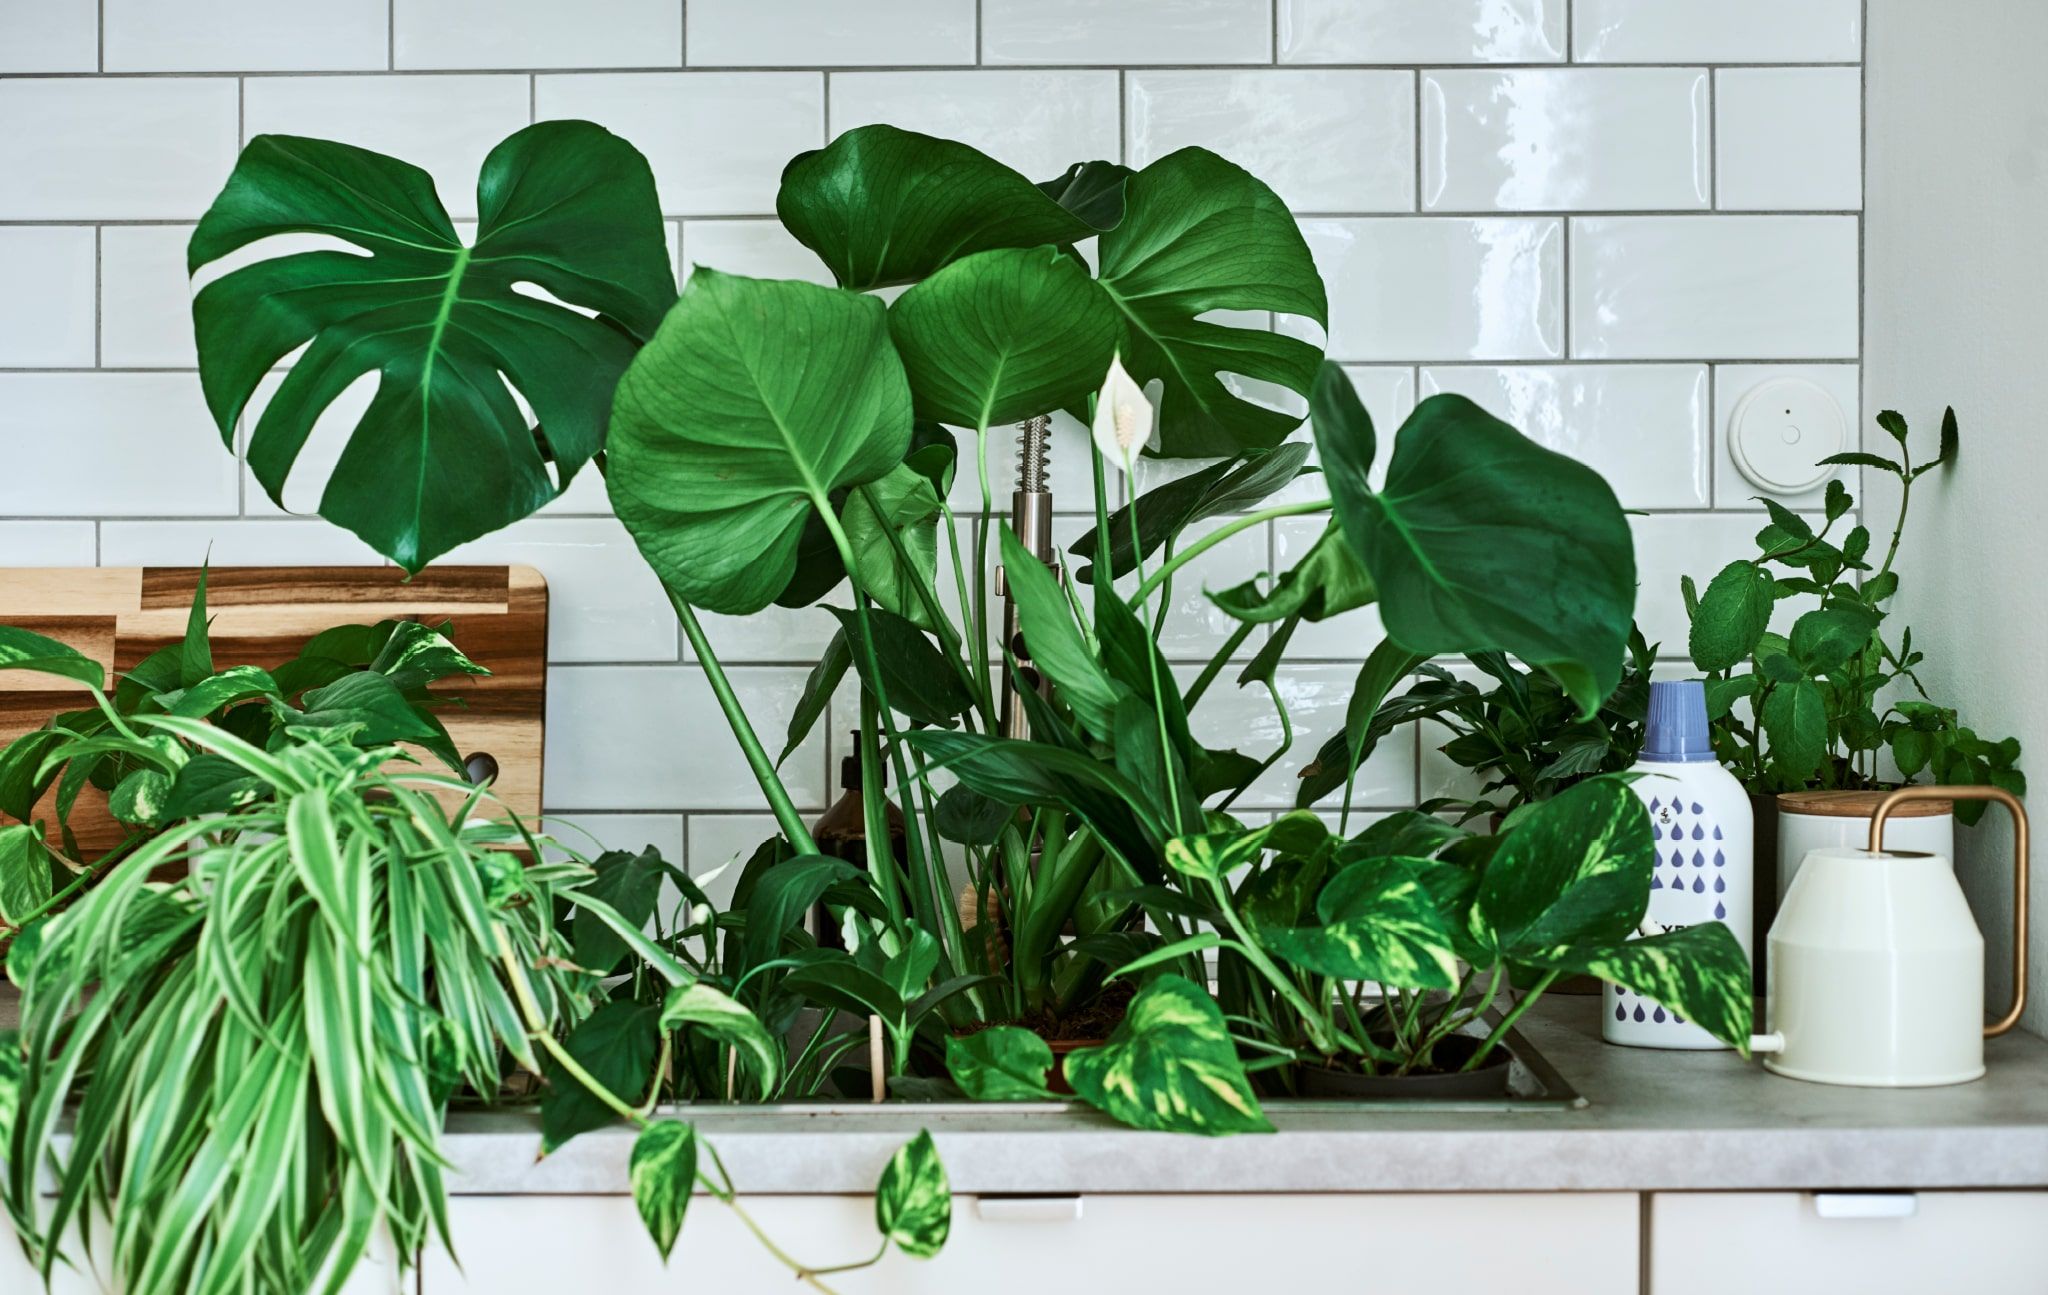 Home visit: how to care for your houseplants